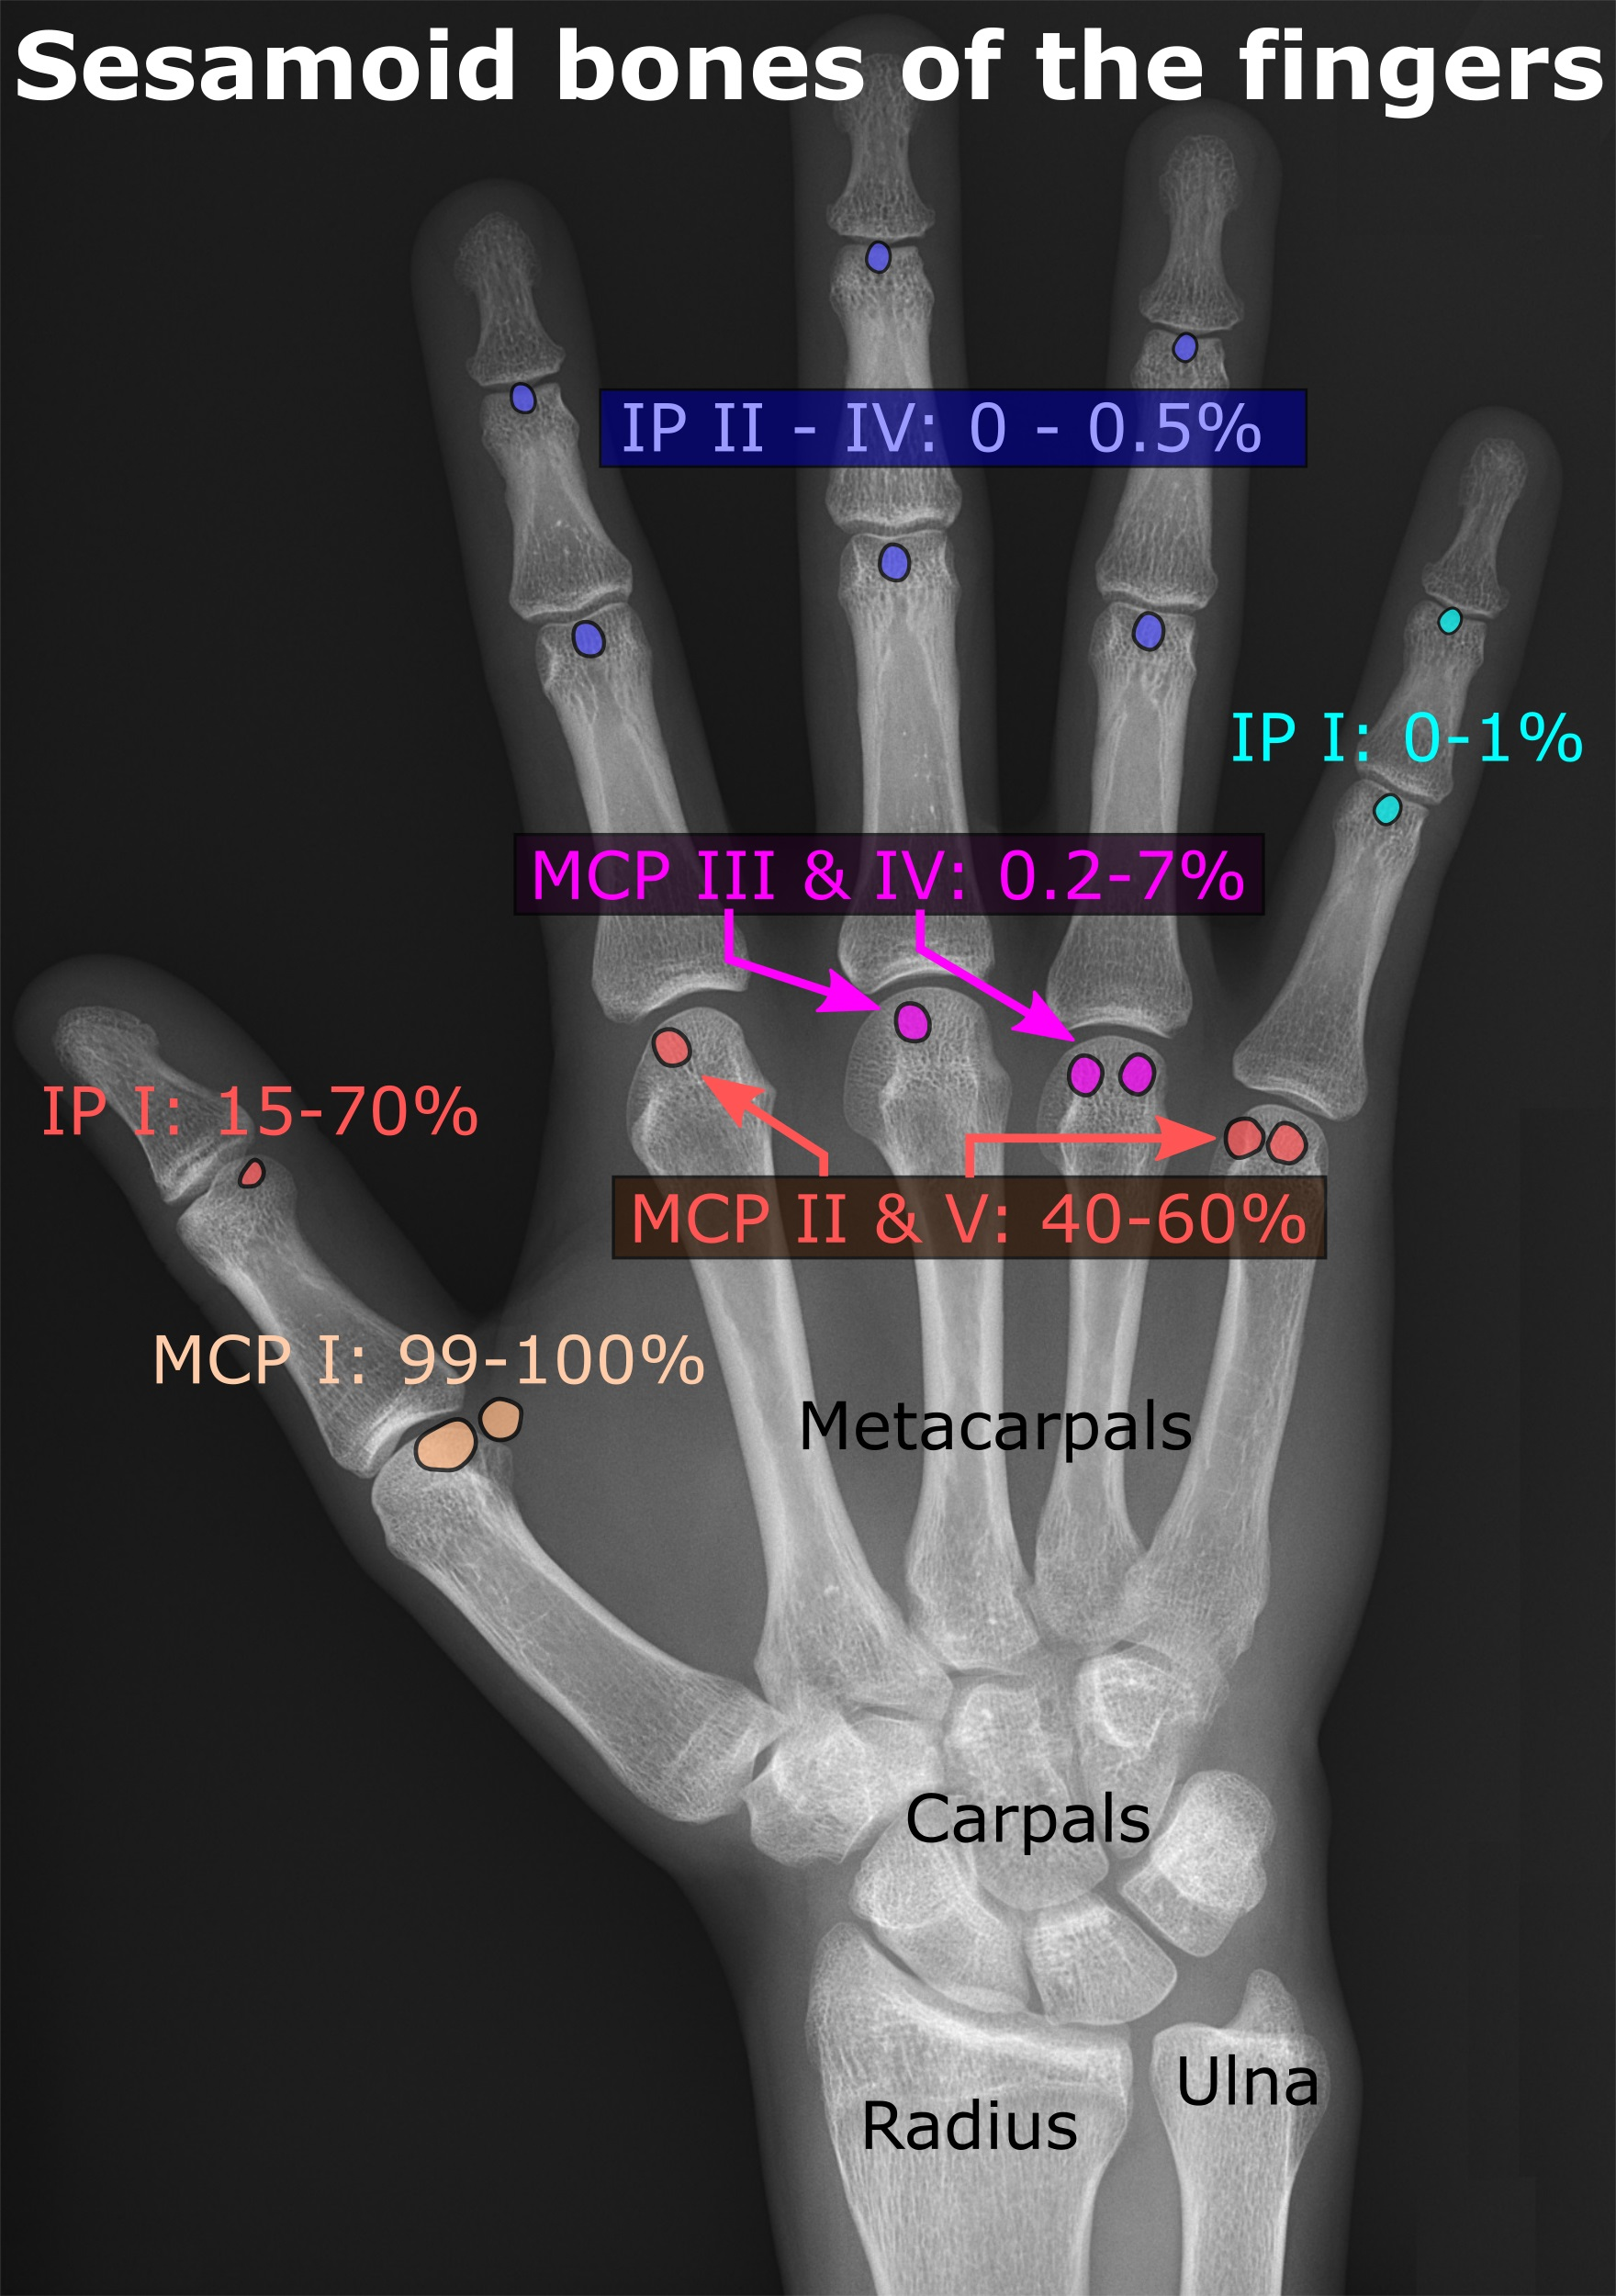 Sesamoid bone - Wikipedia